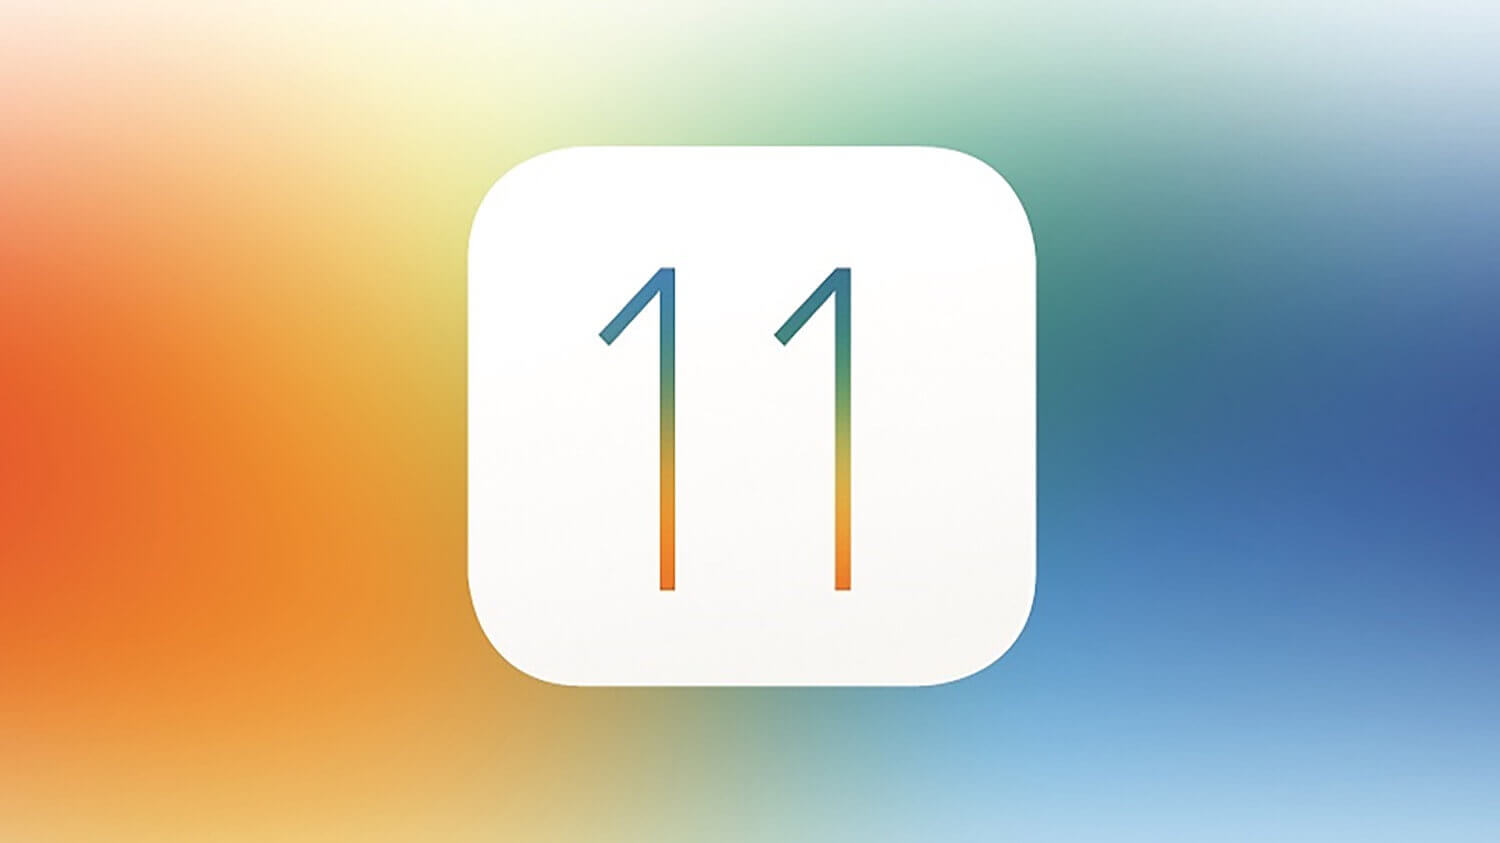 Вышли третьи бета-версии iOS 11, macOS High Sierra и tvOS 11